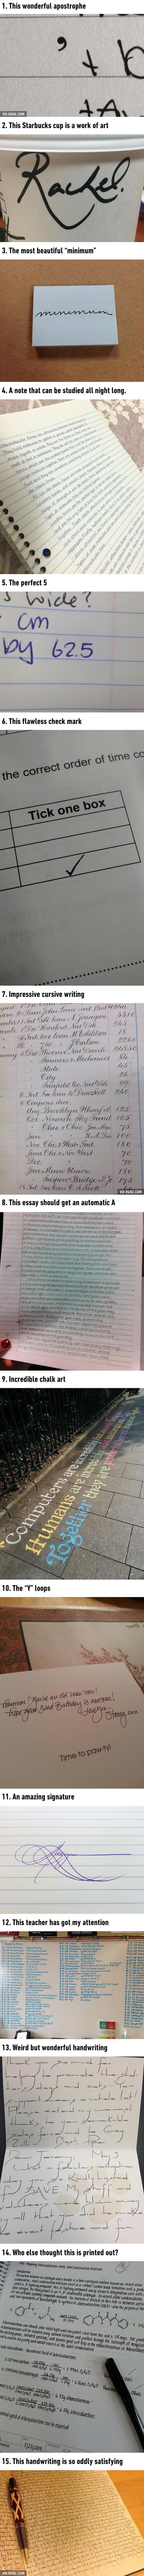 Pieces Of Handwriting That Are So Satisfying - 9GAG